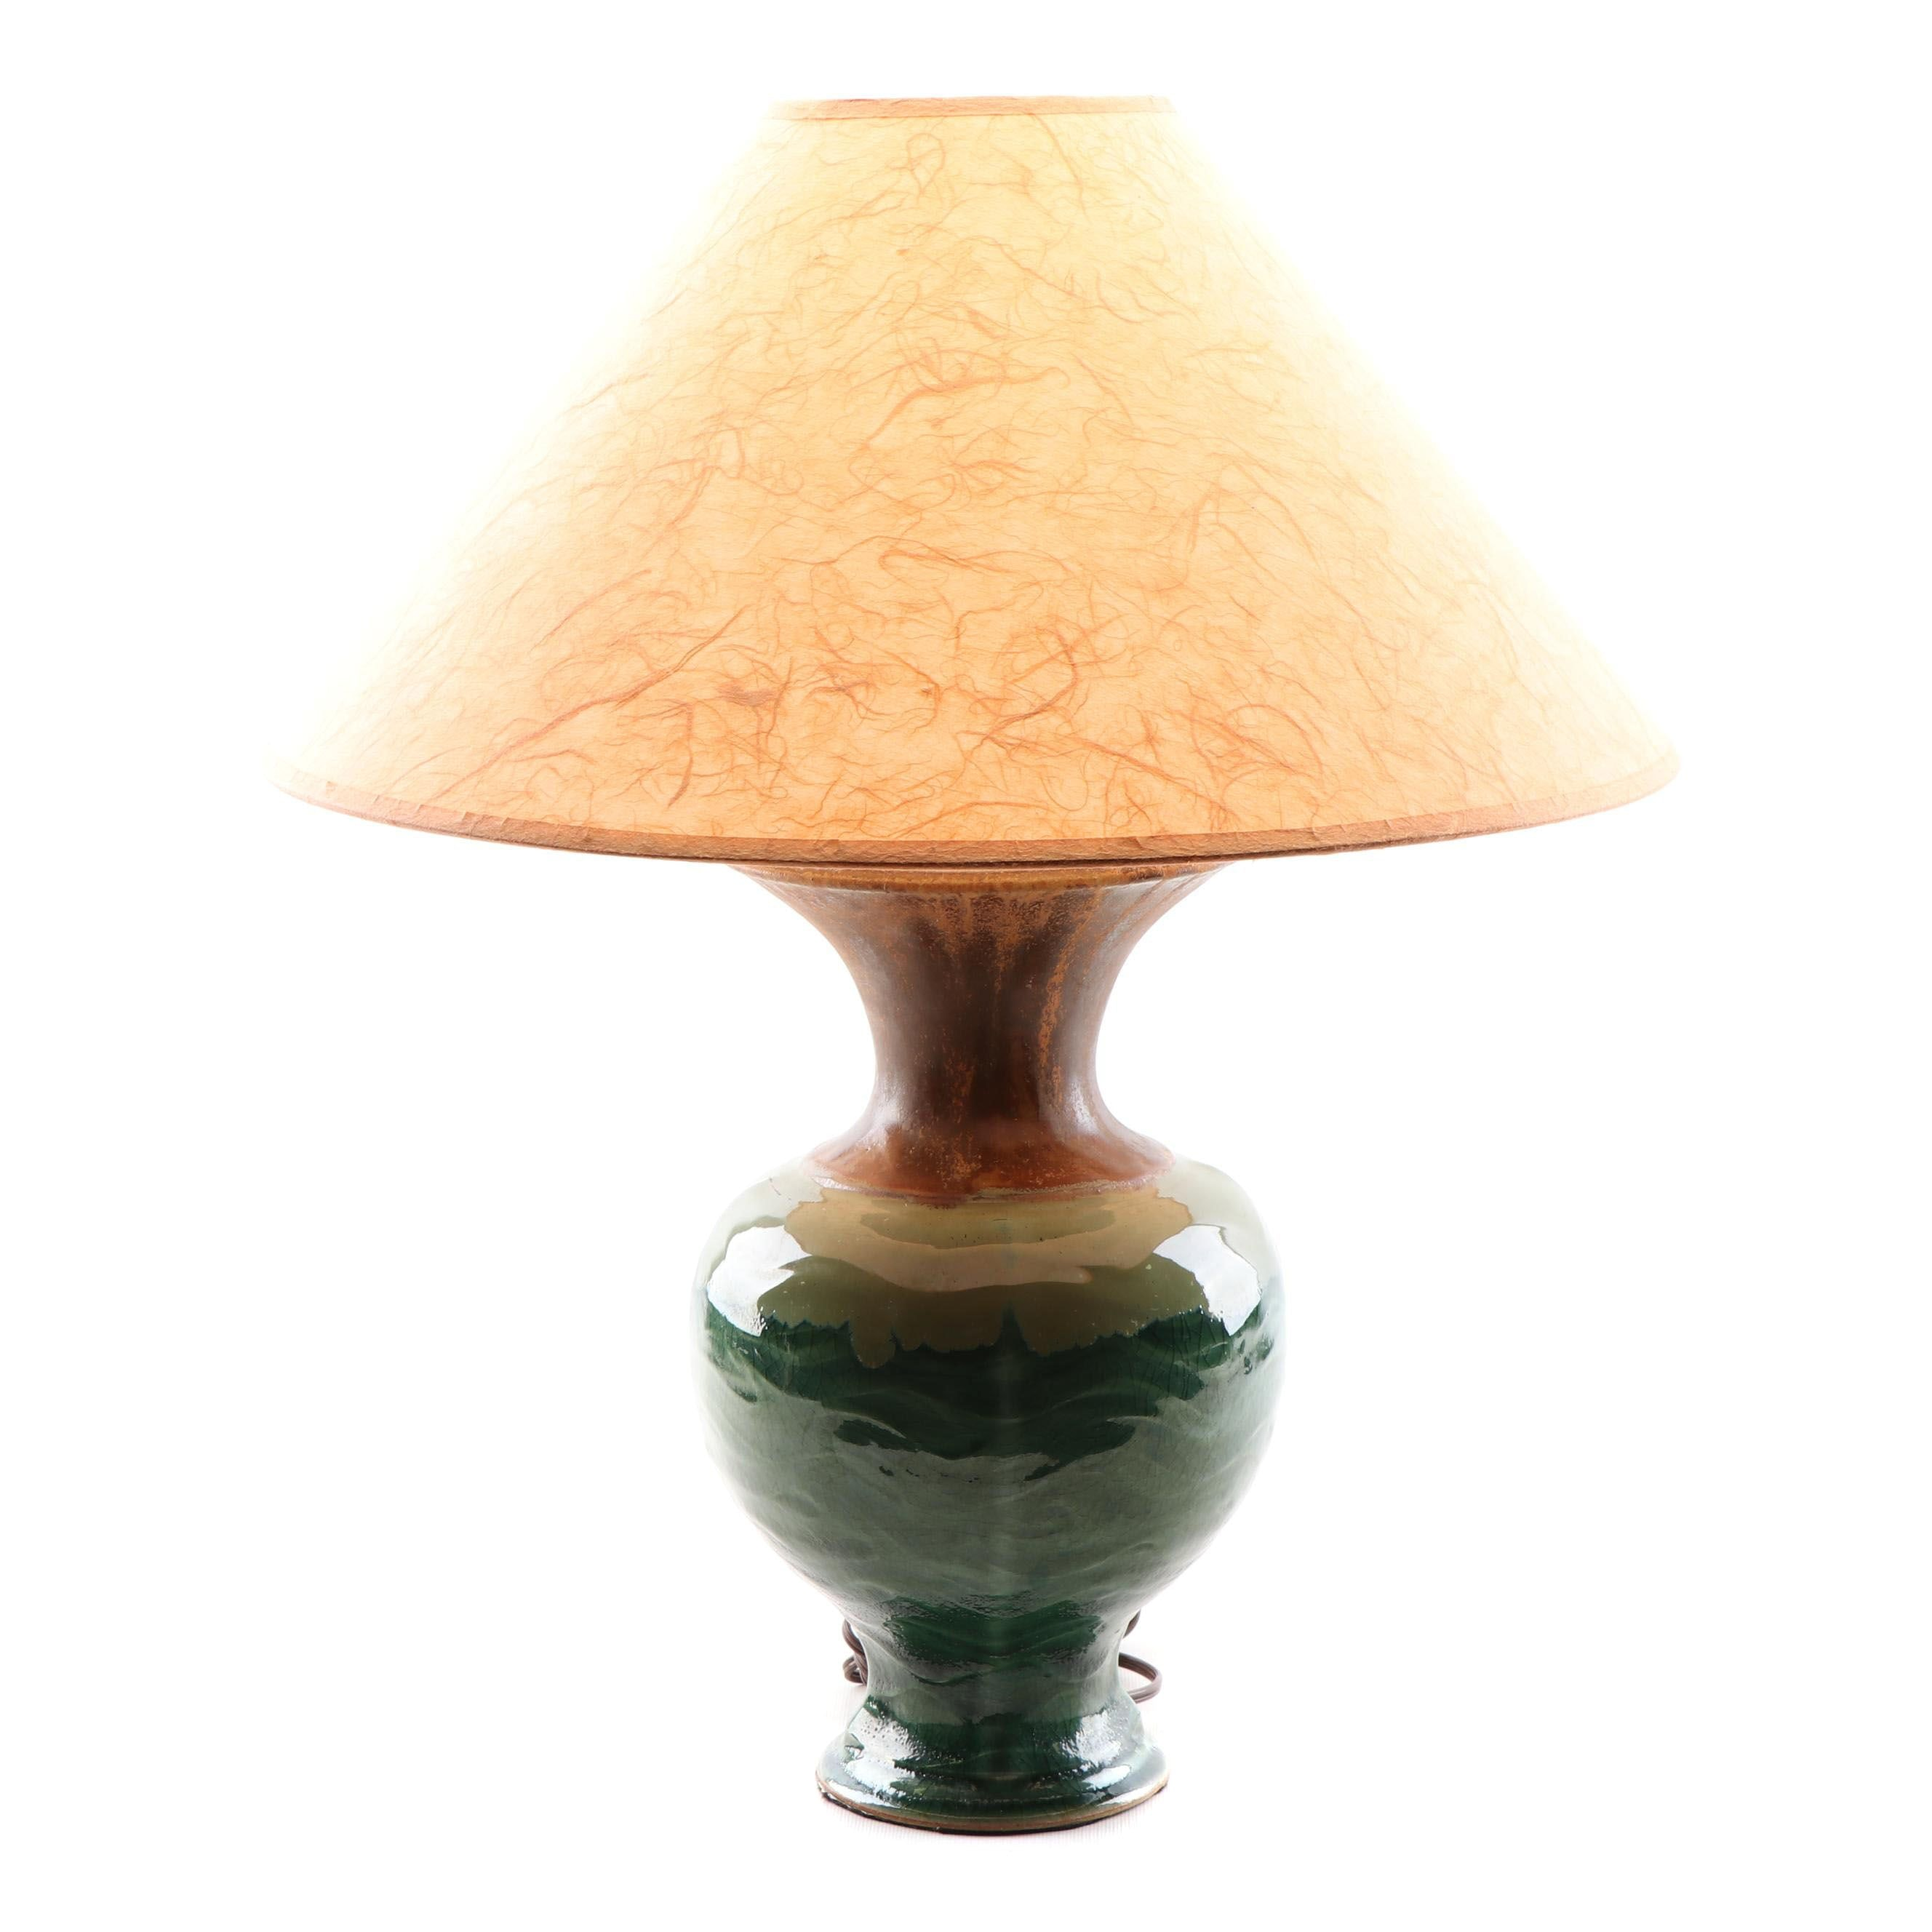 Wheel Thrown Stoneware Drip Glazed Table Lamp with Parchment Lamp Shade